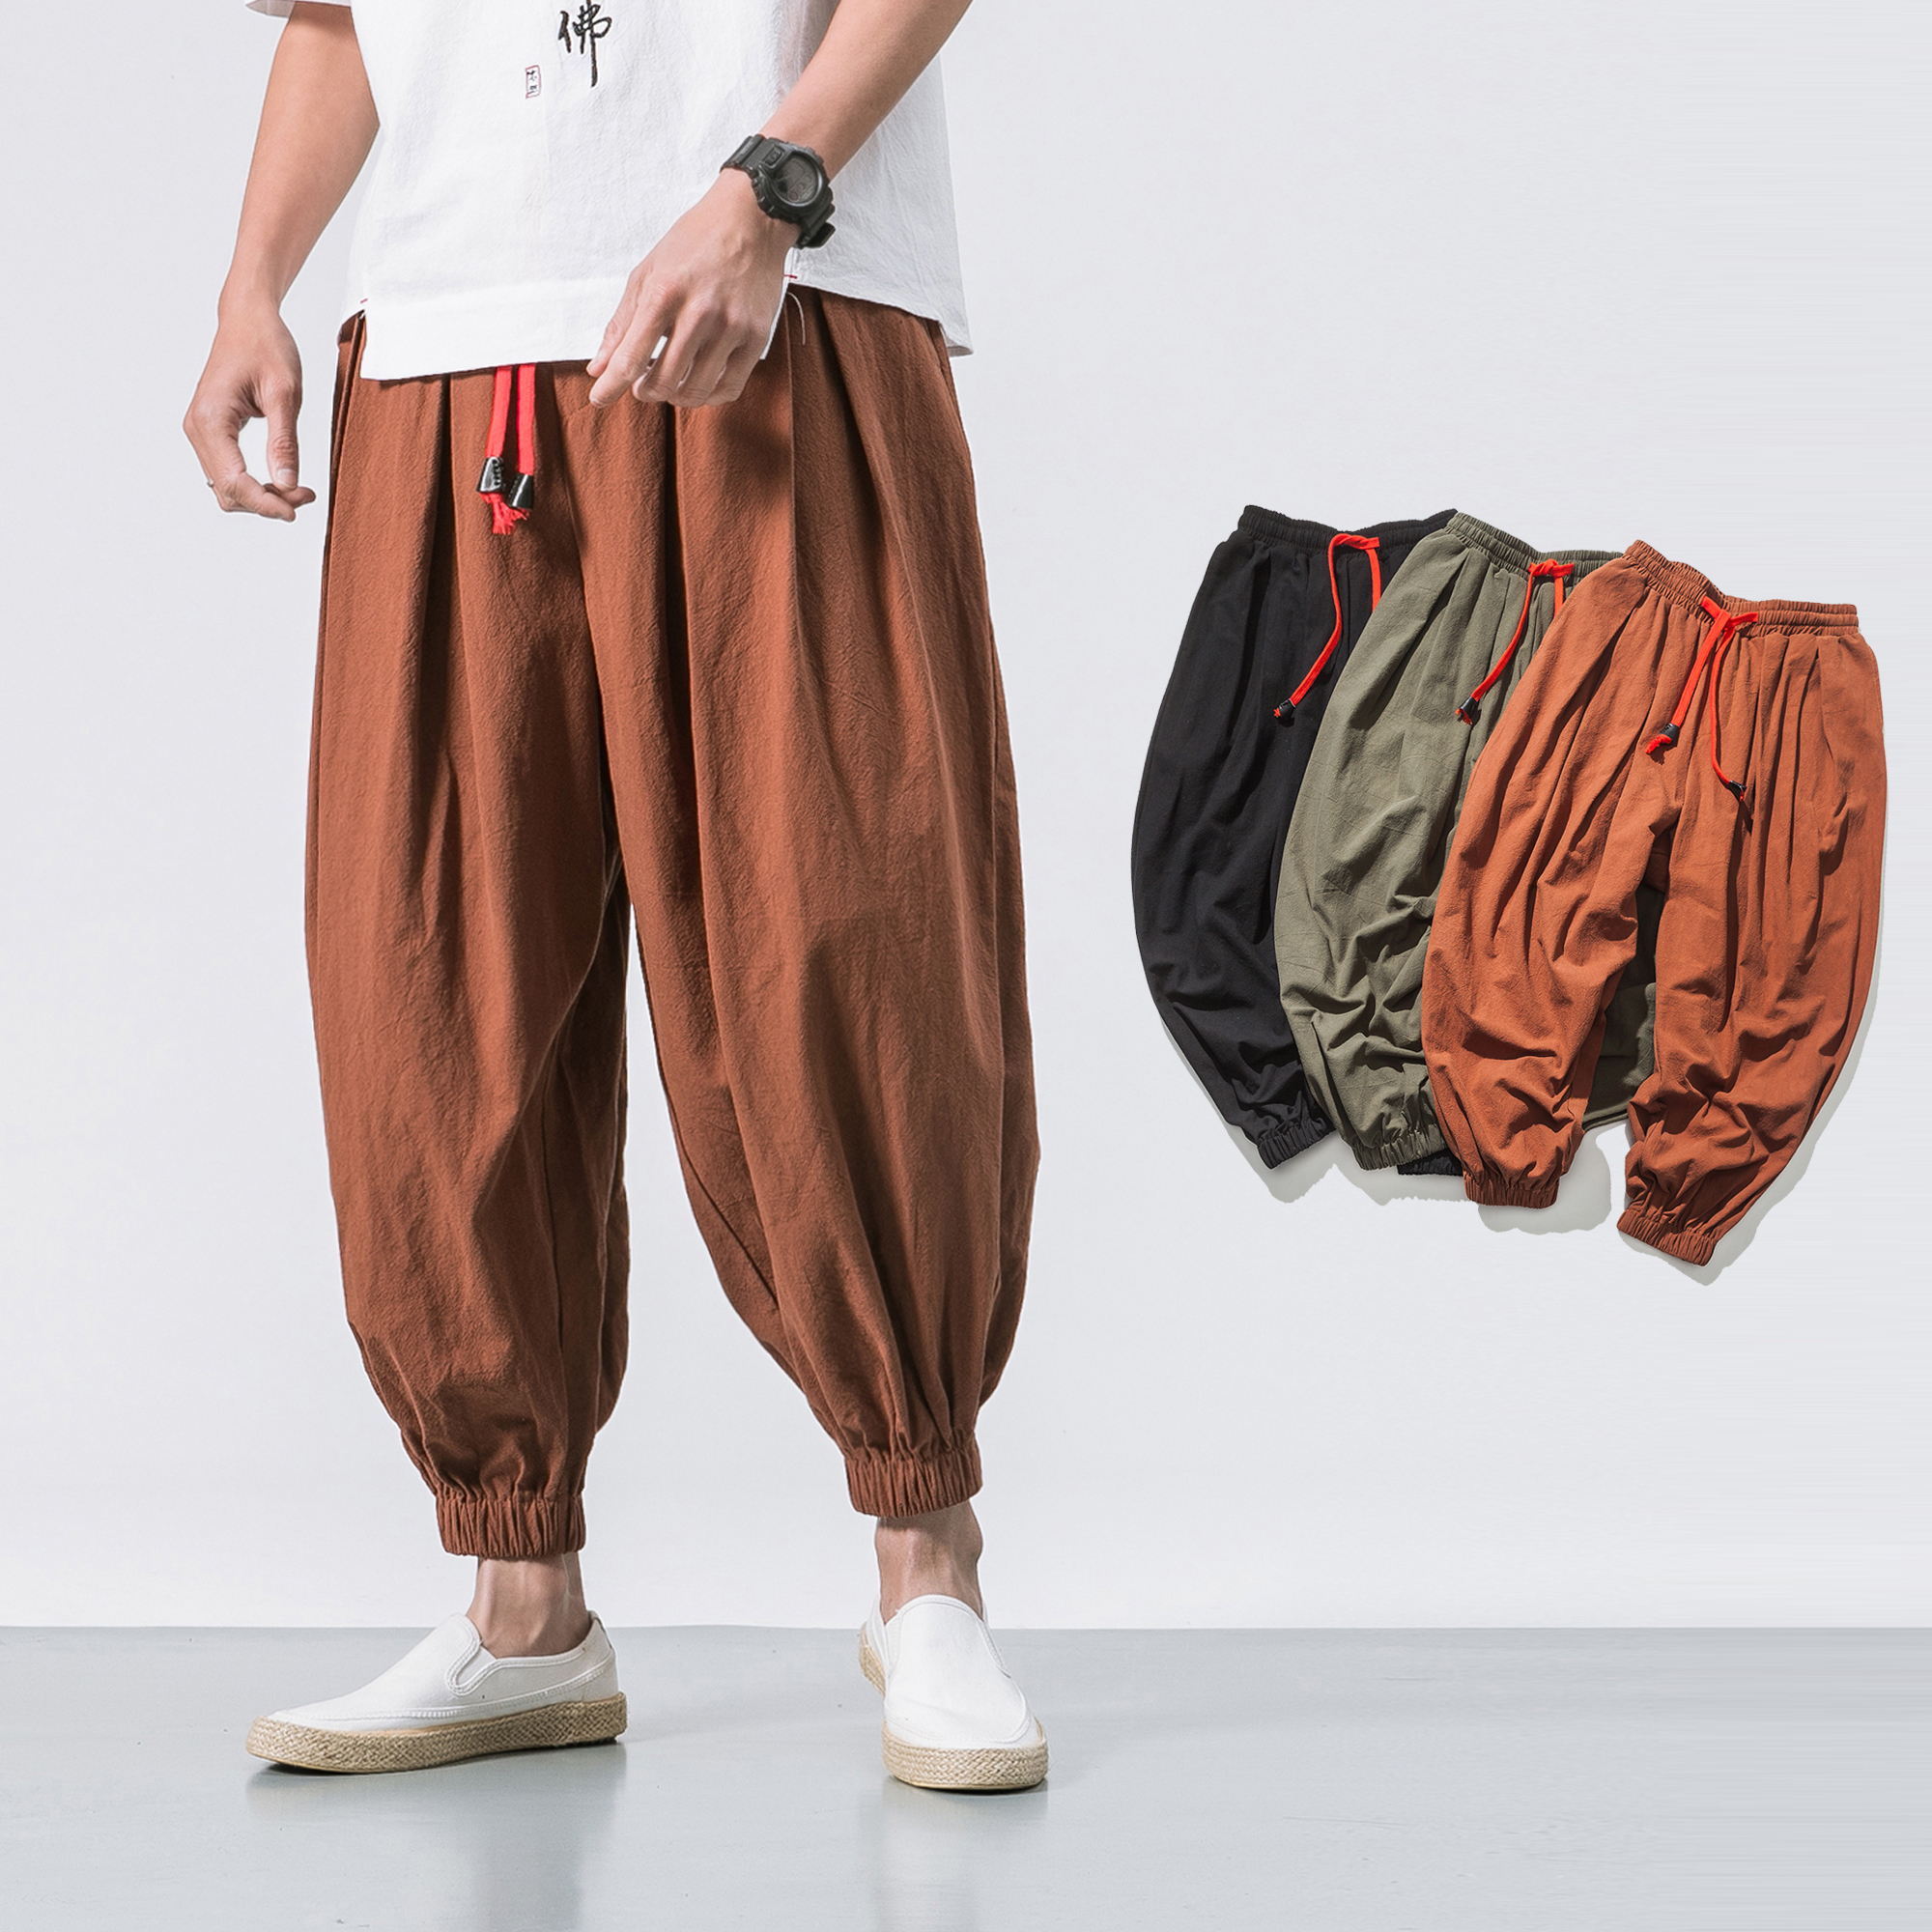 4aa0f1dd46b Detail Feedback Questions about Japanese cotton flaxen trousers ankle  banded pants men loose harem Chinese style large bloomers linen  knickerbockers on ...